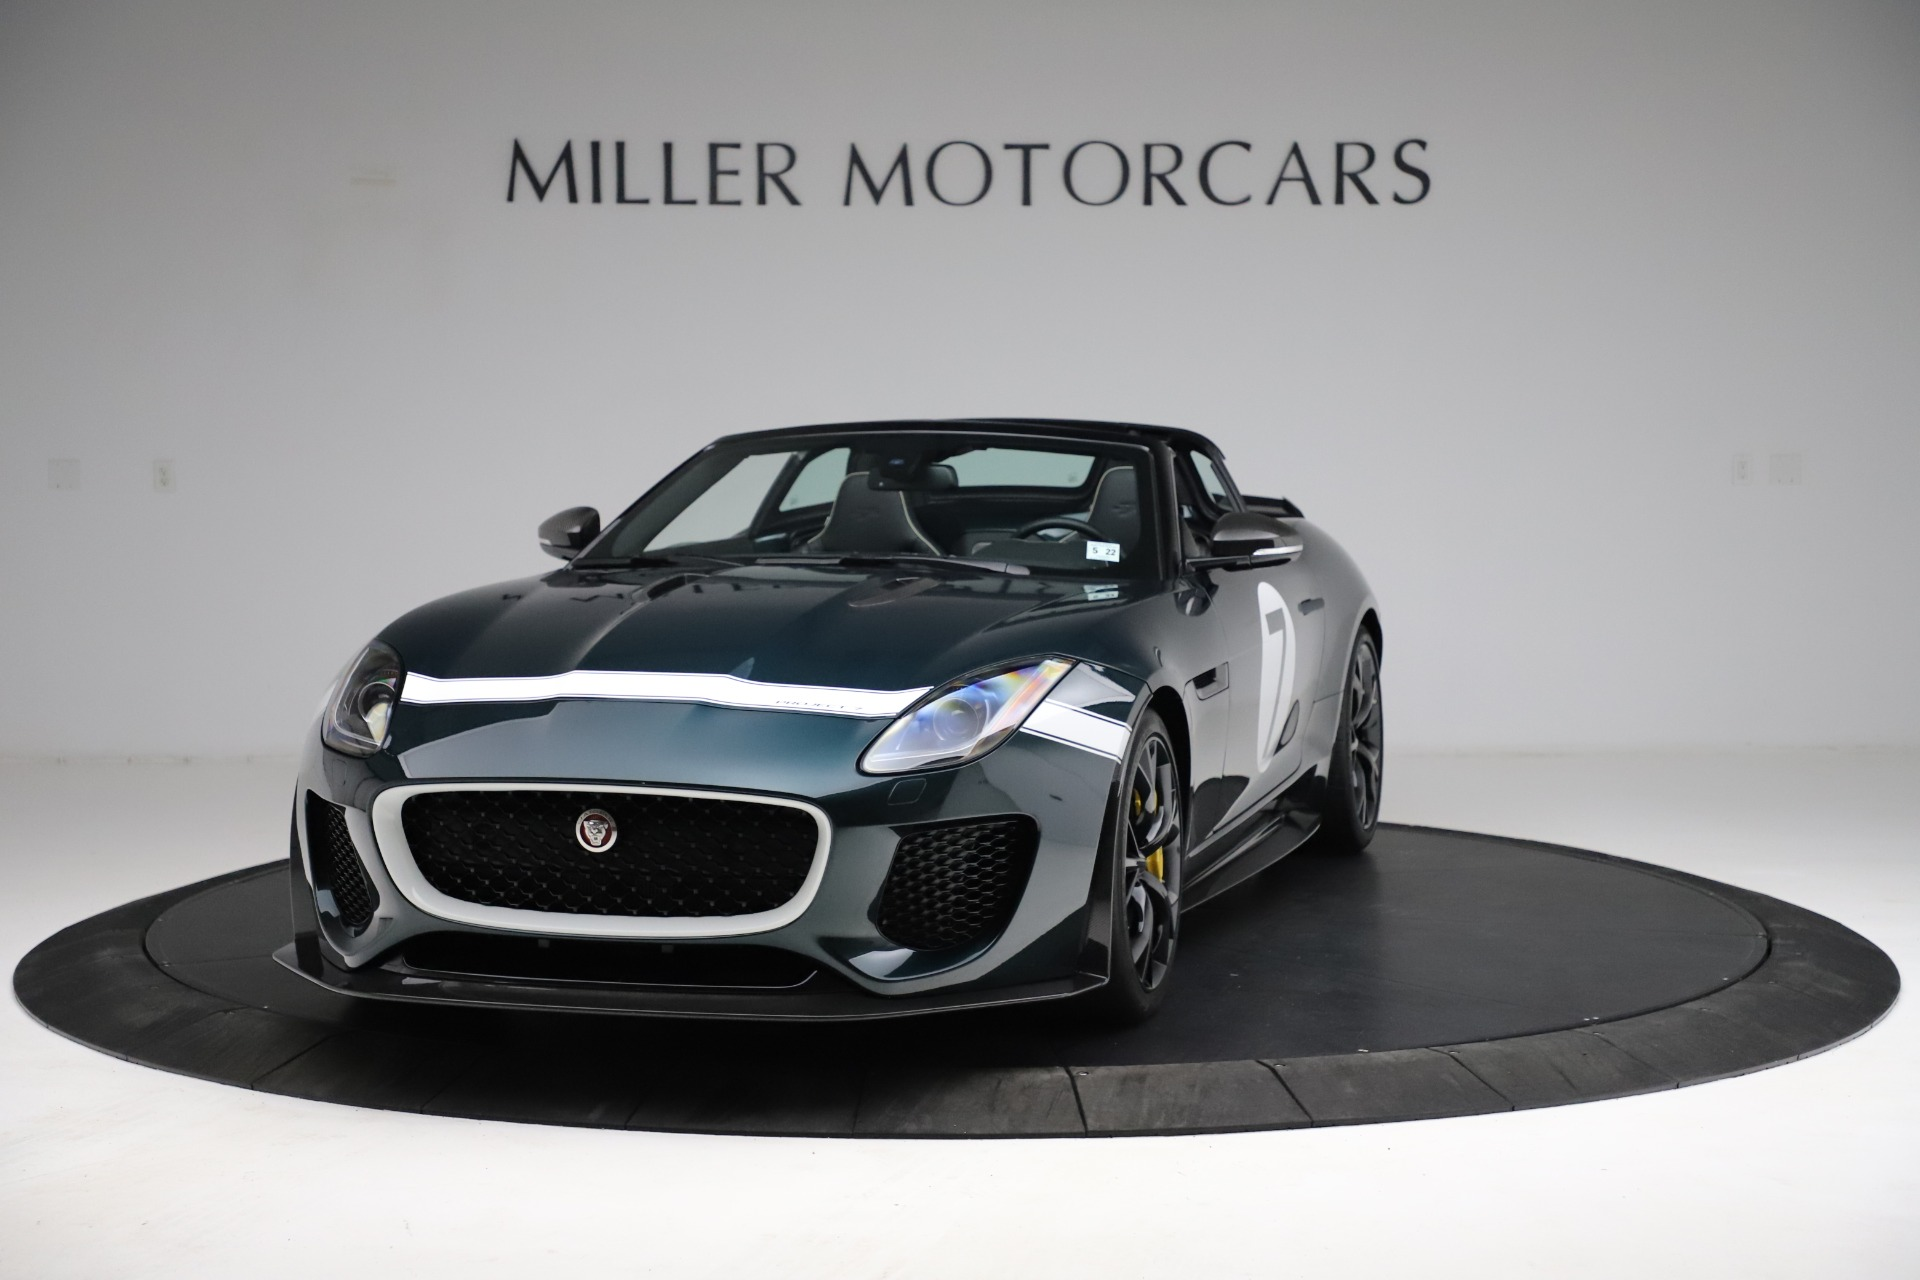 Used 2016 Jaguar F-TYPE Project 7 for sale $225,900 at Pagani of Greenwich in Greenwich CT 06830 1